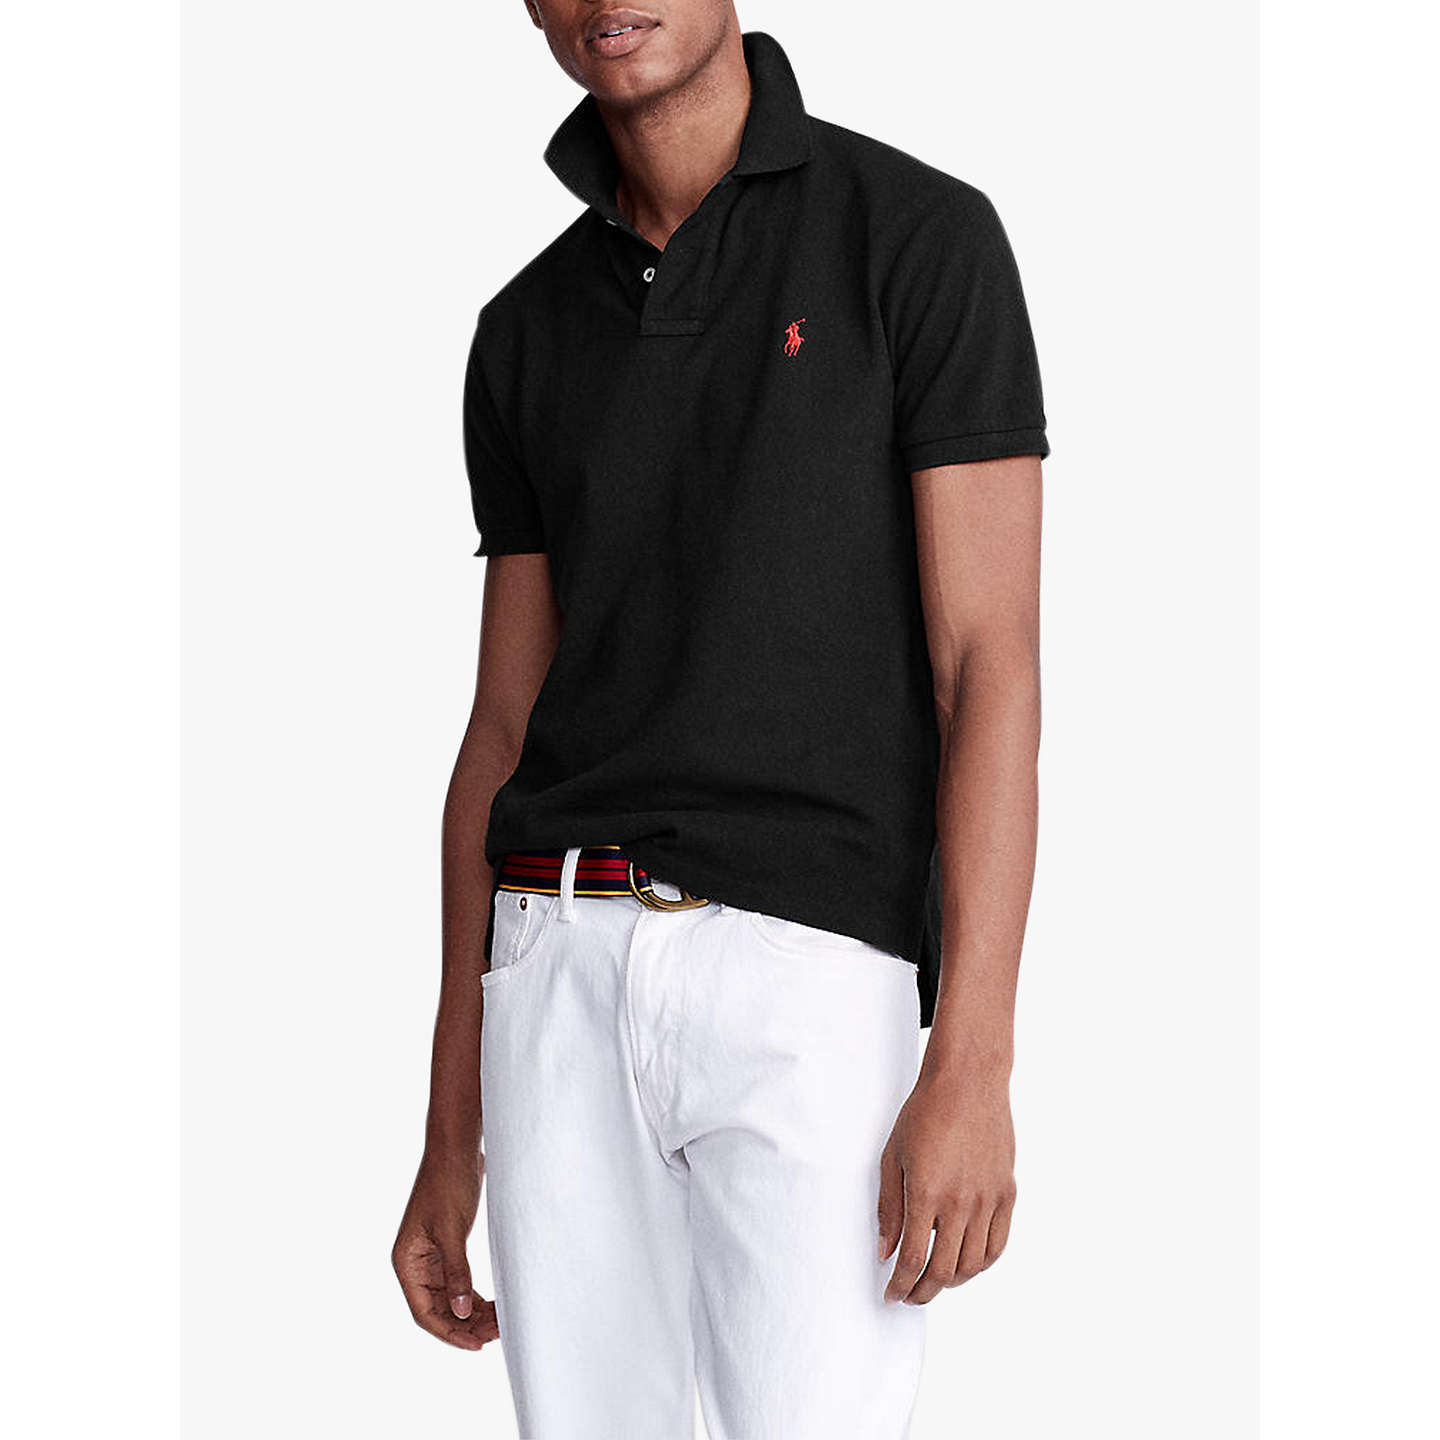 BuyPolo Ralph Lauren Short Sleeve Slim Fit Polo Shirt, Polo Black, S Online  at ...